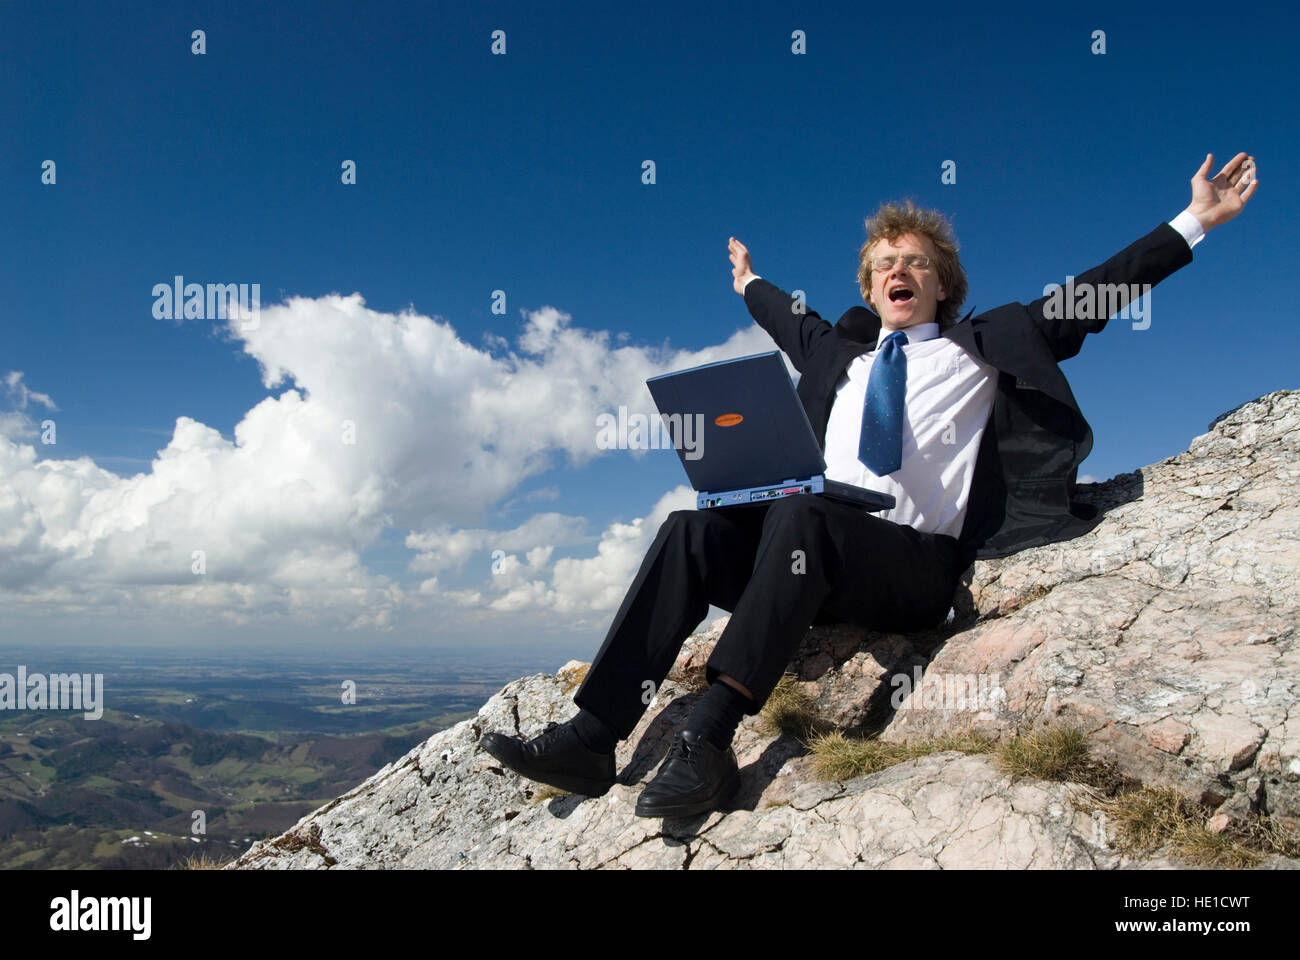 Businessman at the finish, reached his goal - Stock Image